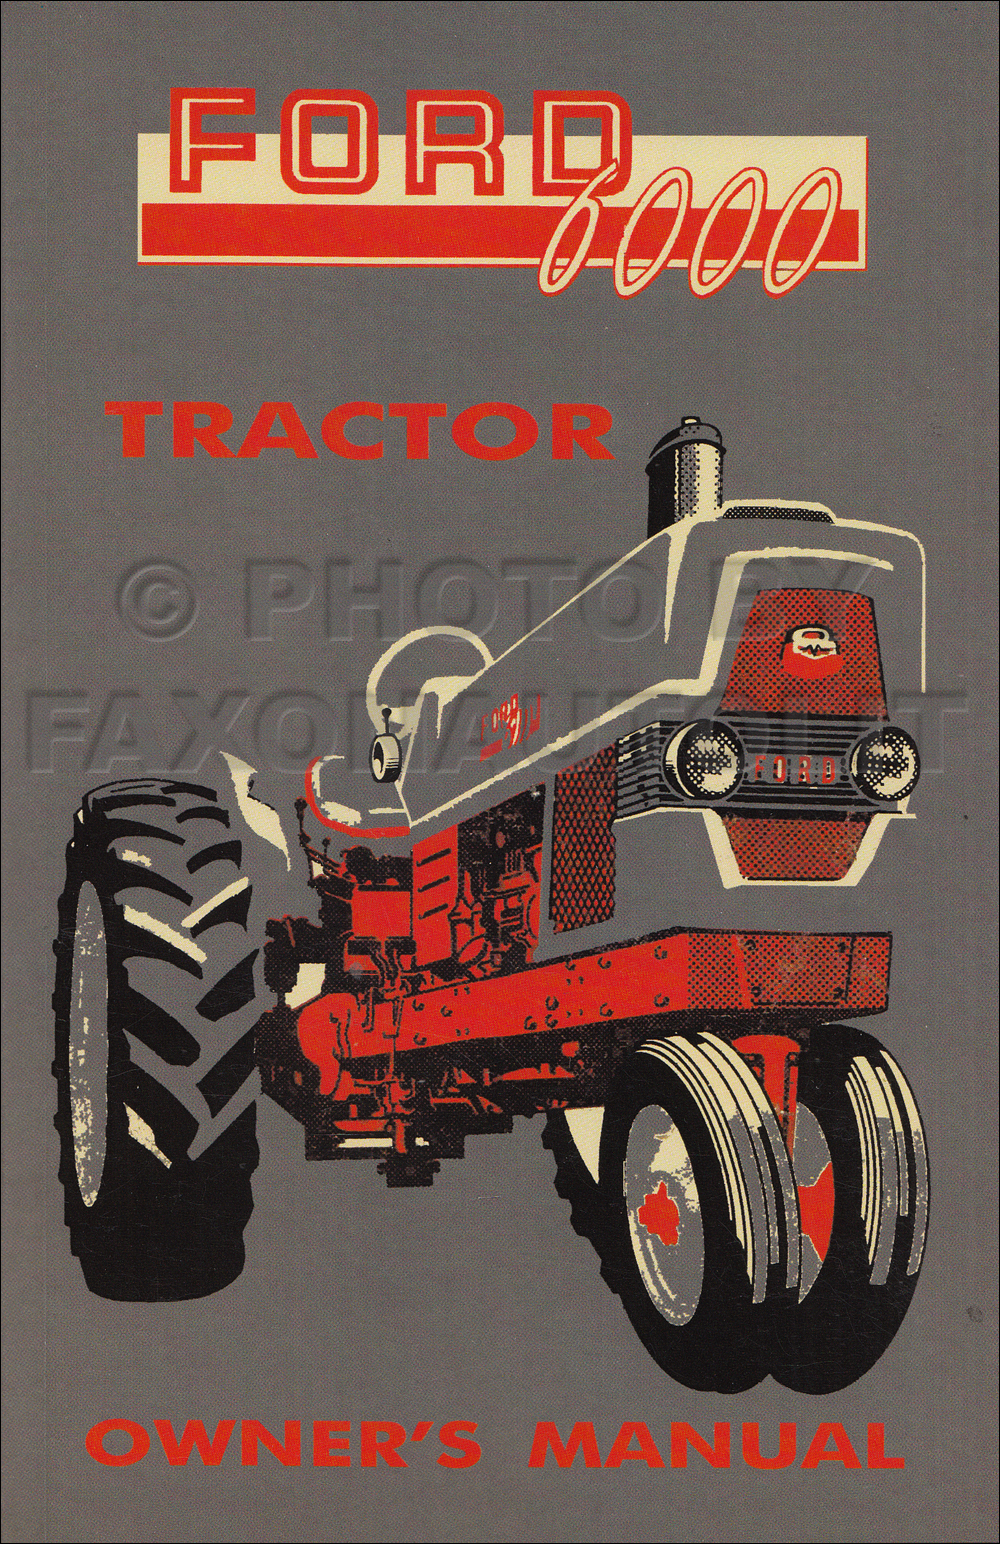 1962-1964 Ford 6000 Tractor Owner's Manual Reprint